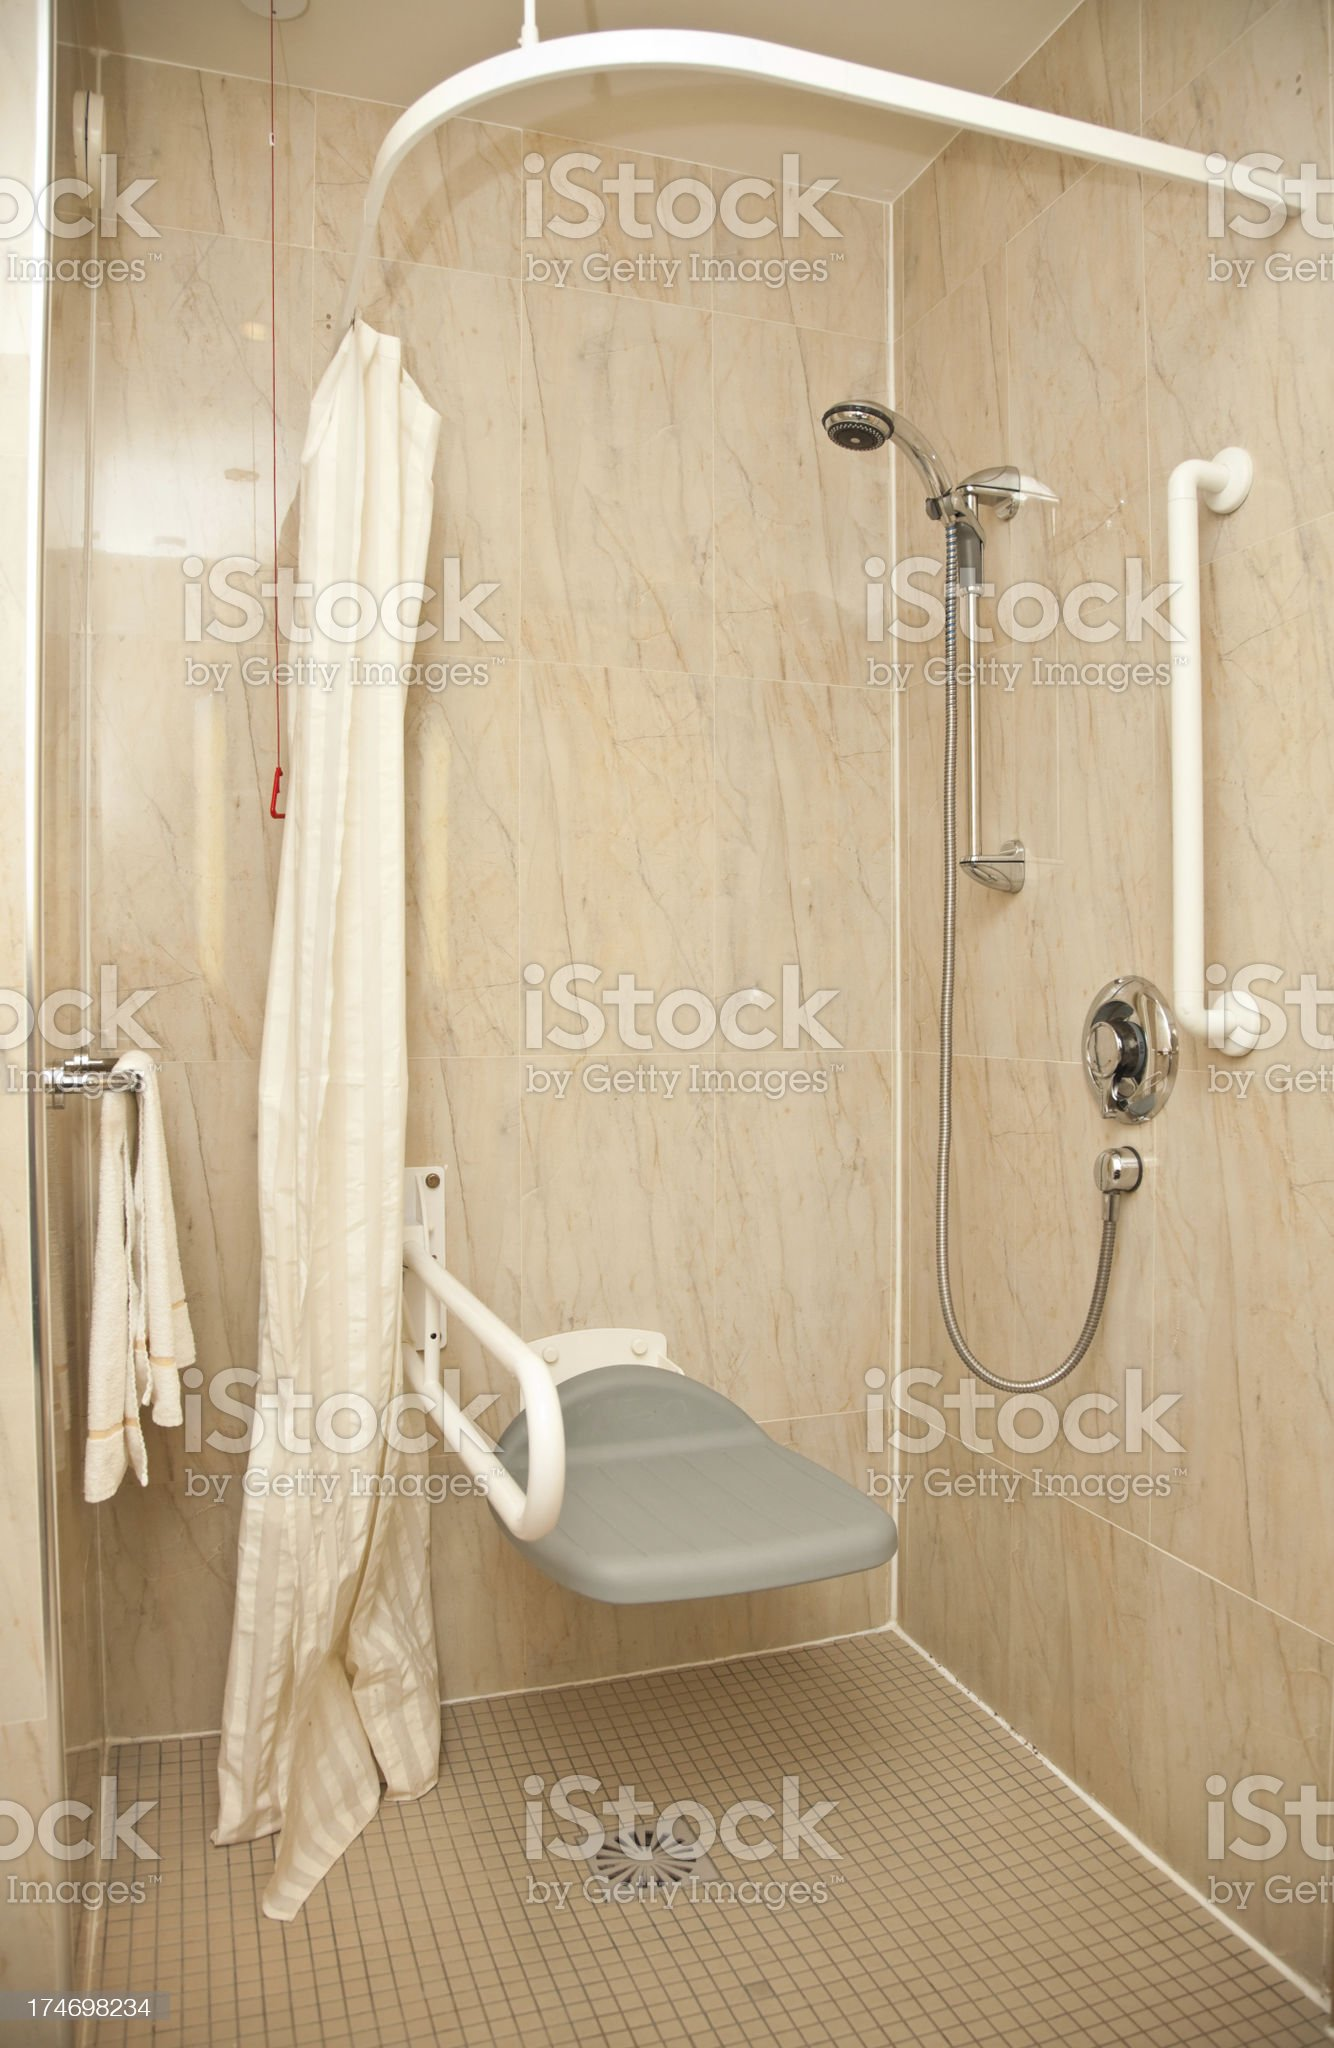 Shower for the disabled royalty-free stock photo